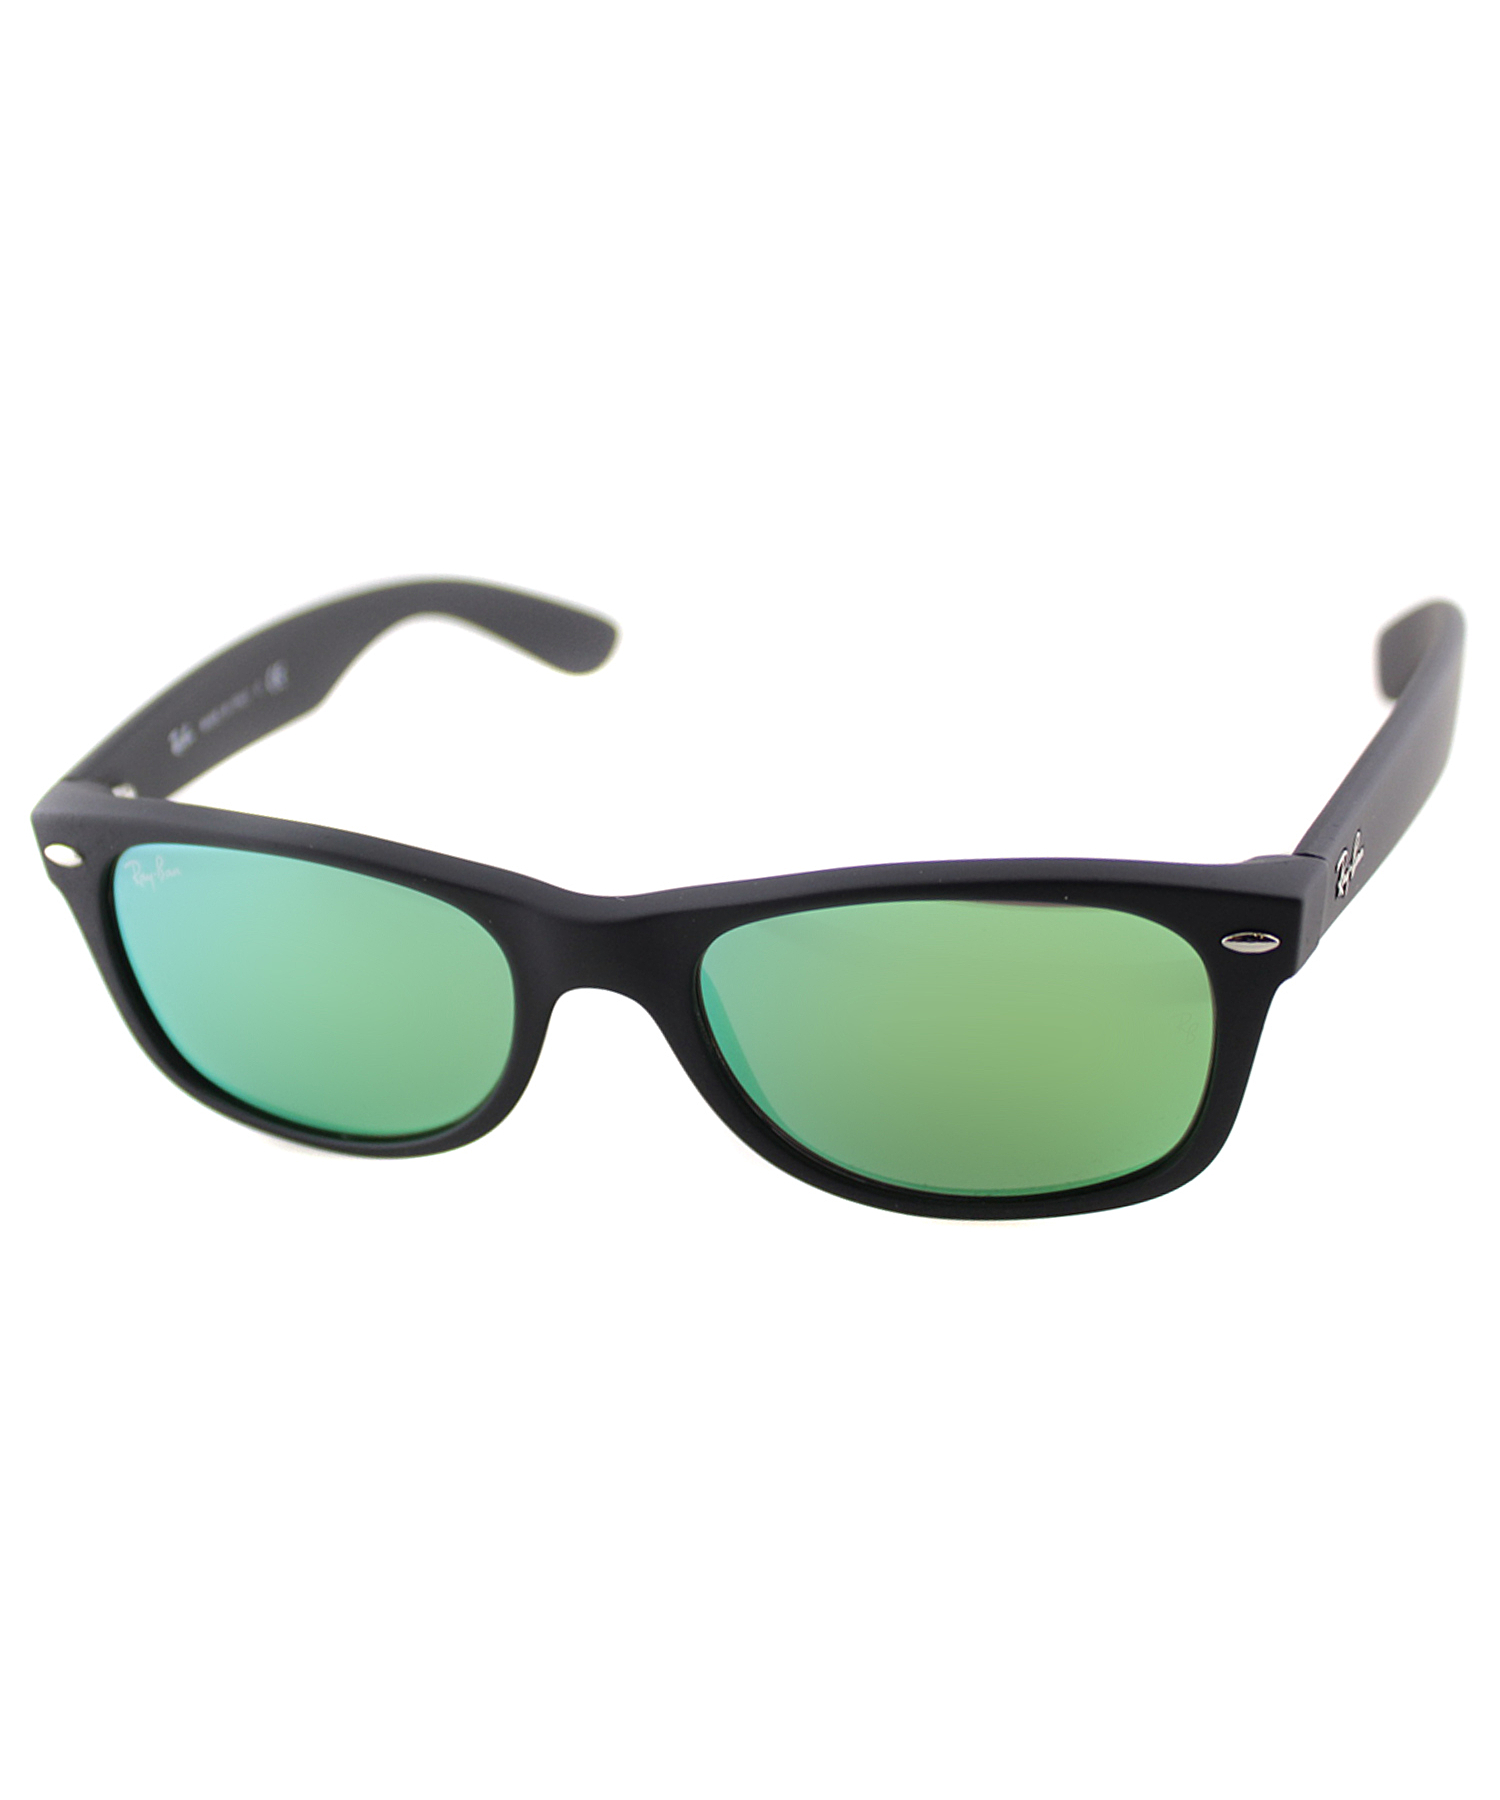 a2ee8029805 Plastic Ray Or « Glass Lenses Malta Ban Heritage TIqrCwT